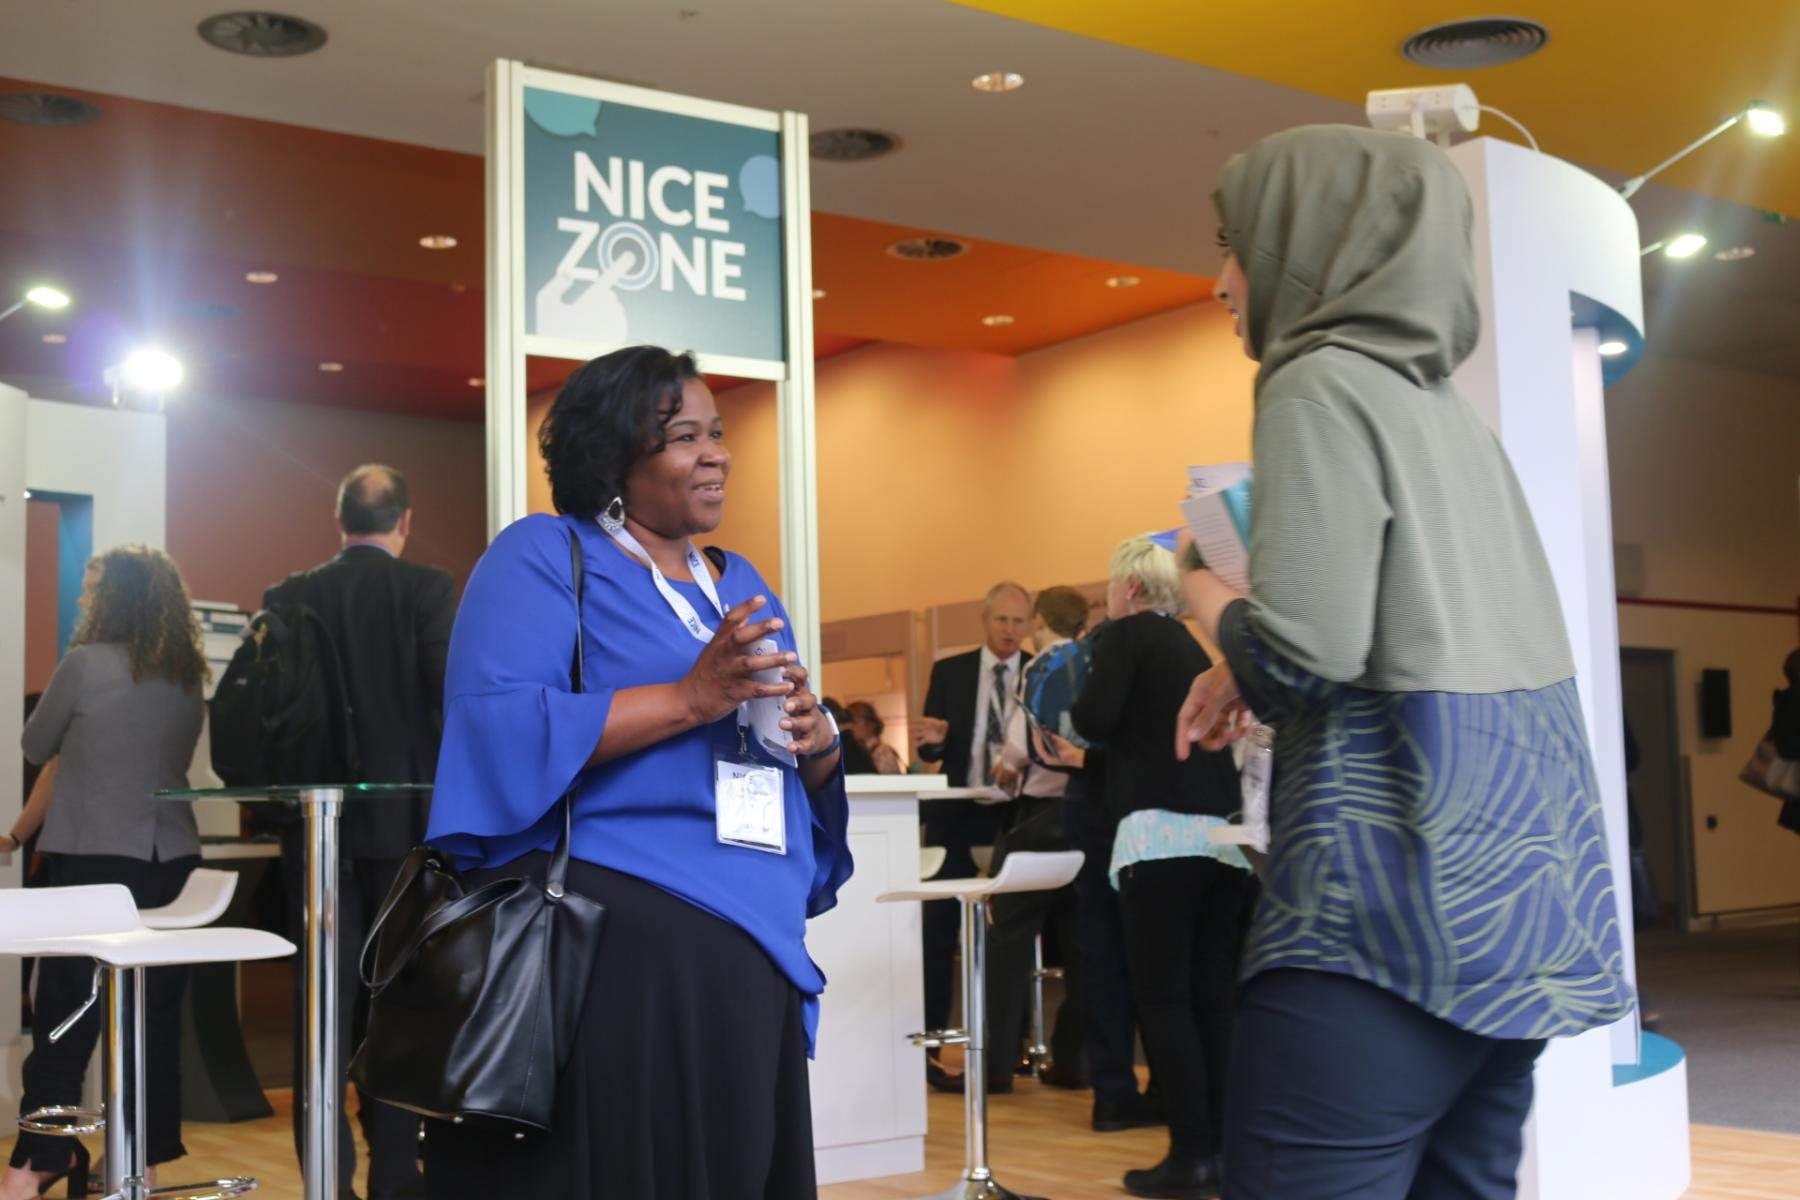 IMG_8965 - NICE Annual Conference.jpg